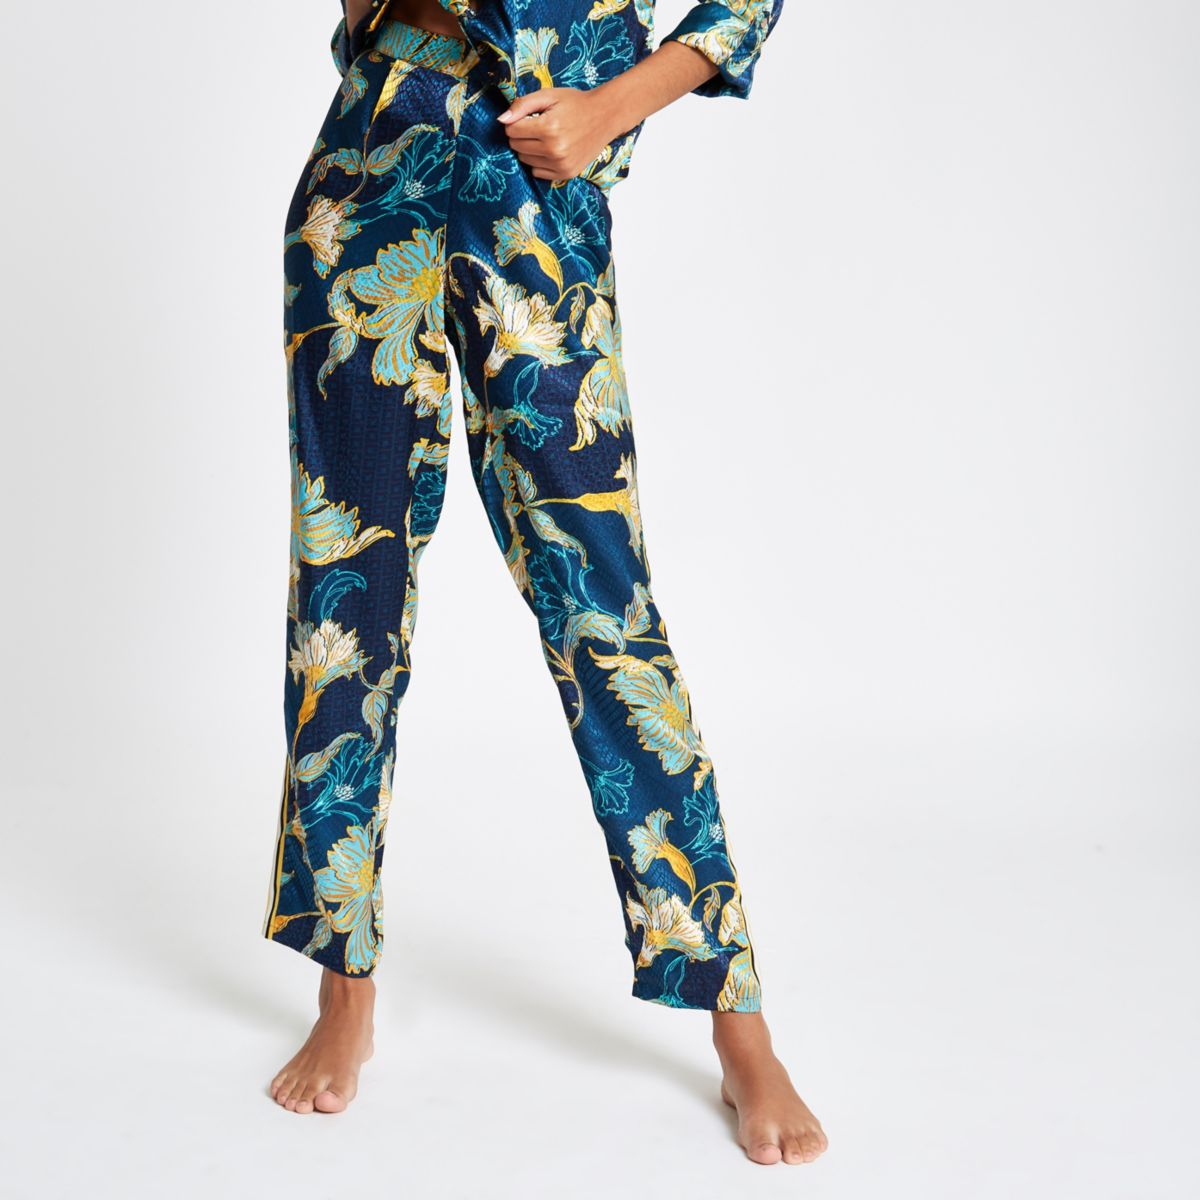 Blue floral satin wide leg pajama pants